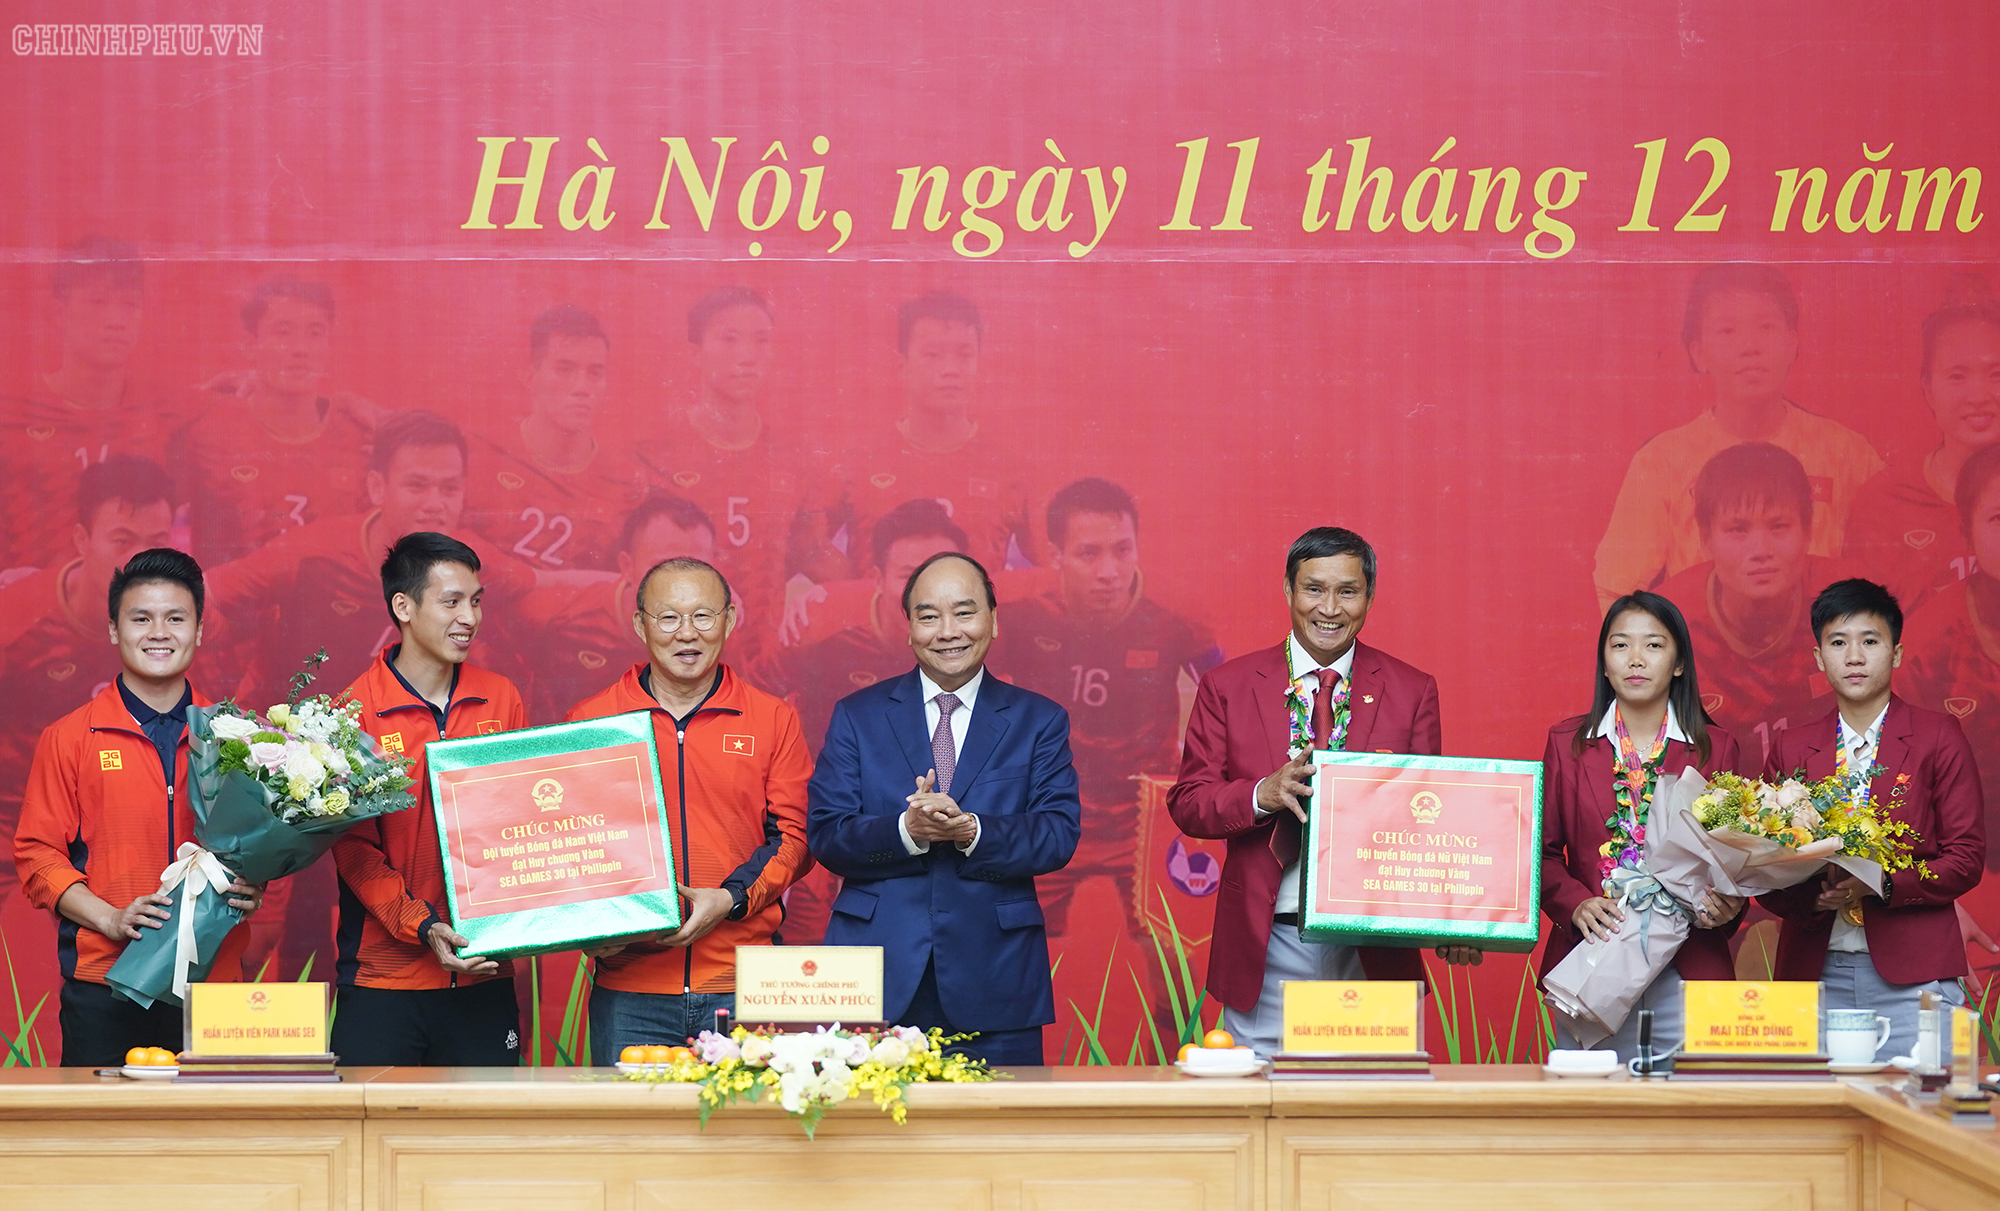 chien thang cua the thao tao cam hung, gop phan xay dung dat nuoc hinh anh 1